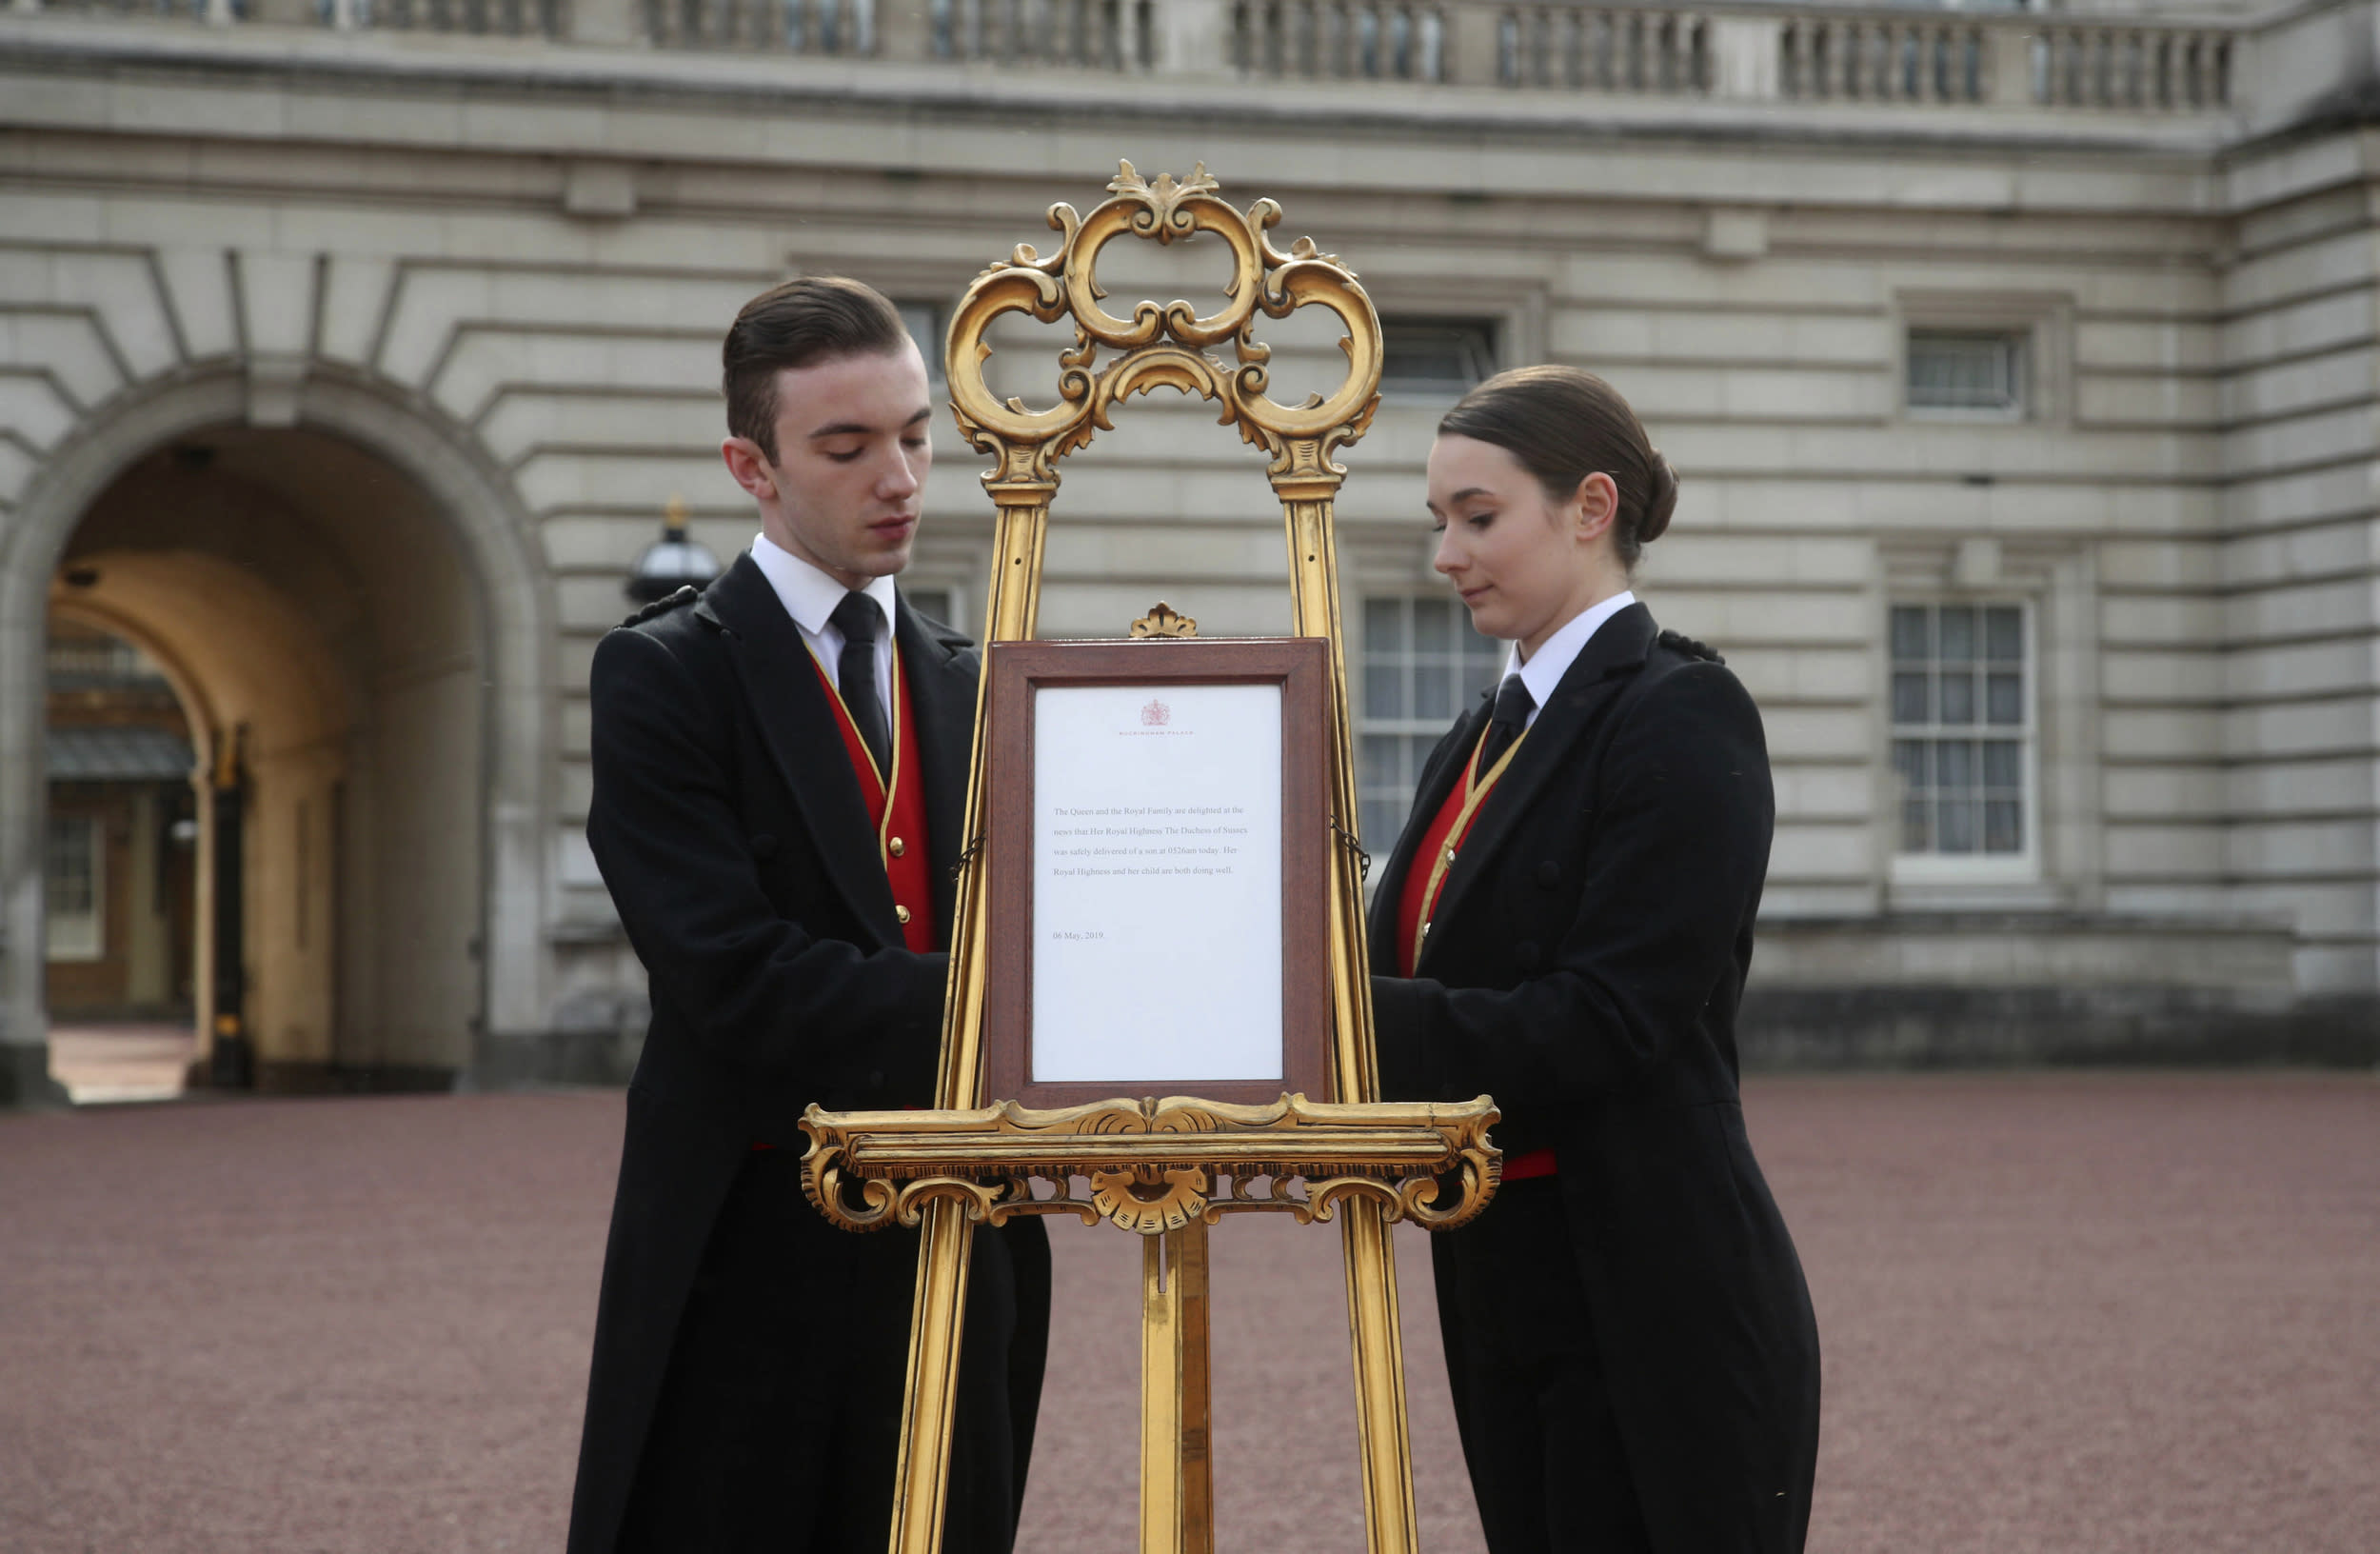 Footmen Stephen Kelly and Sarah Thompson bring out the easel in the forecourt of Buckingham Palace to formally announce the birth of a baby boy to  Britain's Prince Harry and Meghan, the Duchess of Sussex, in London, Monday, May 6, 2019. (Yui Mok/Pool Photo via AP)